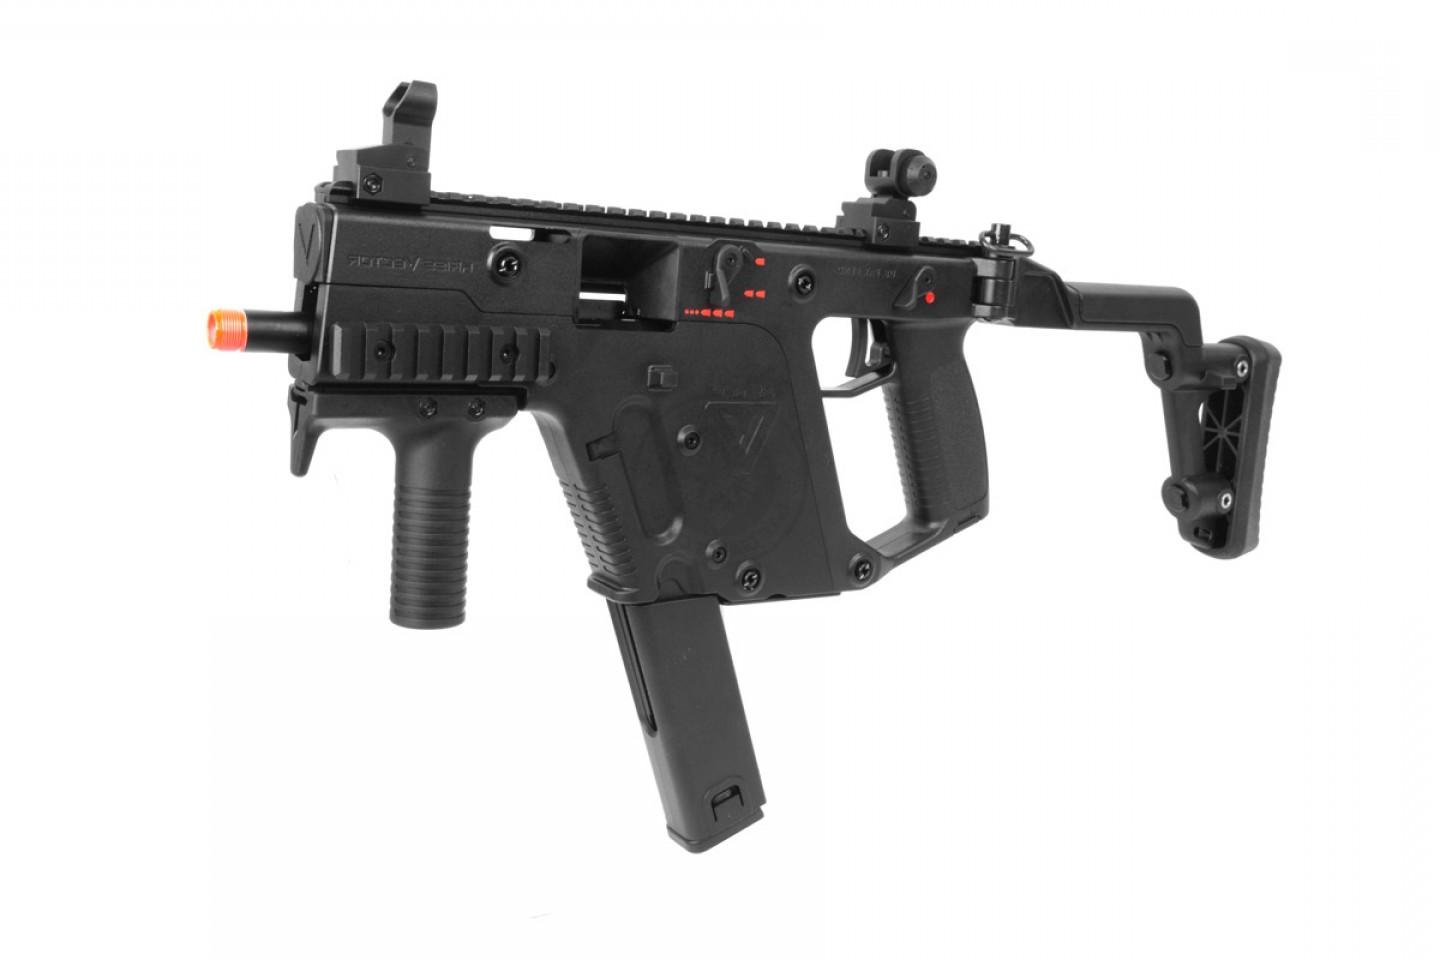 Kriss Vector SMG With Under Barrel: Kwa Kriss Vector Smg Gas Blowback Airsoft Gun Ns Black